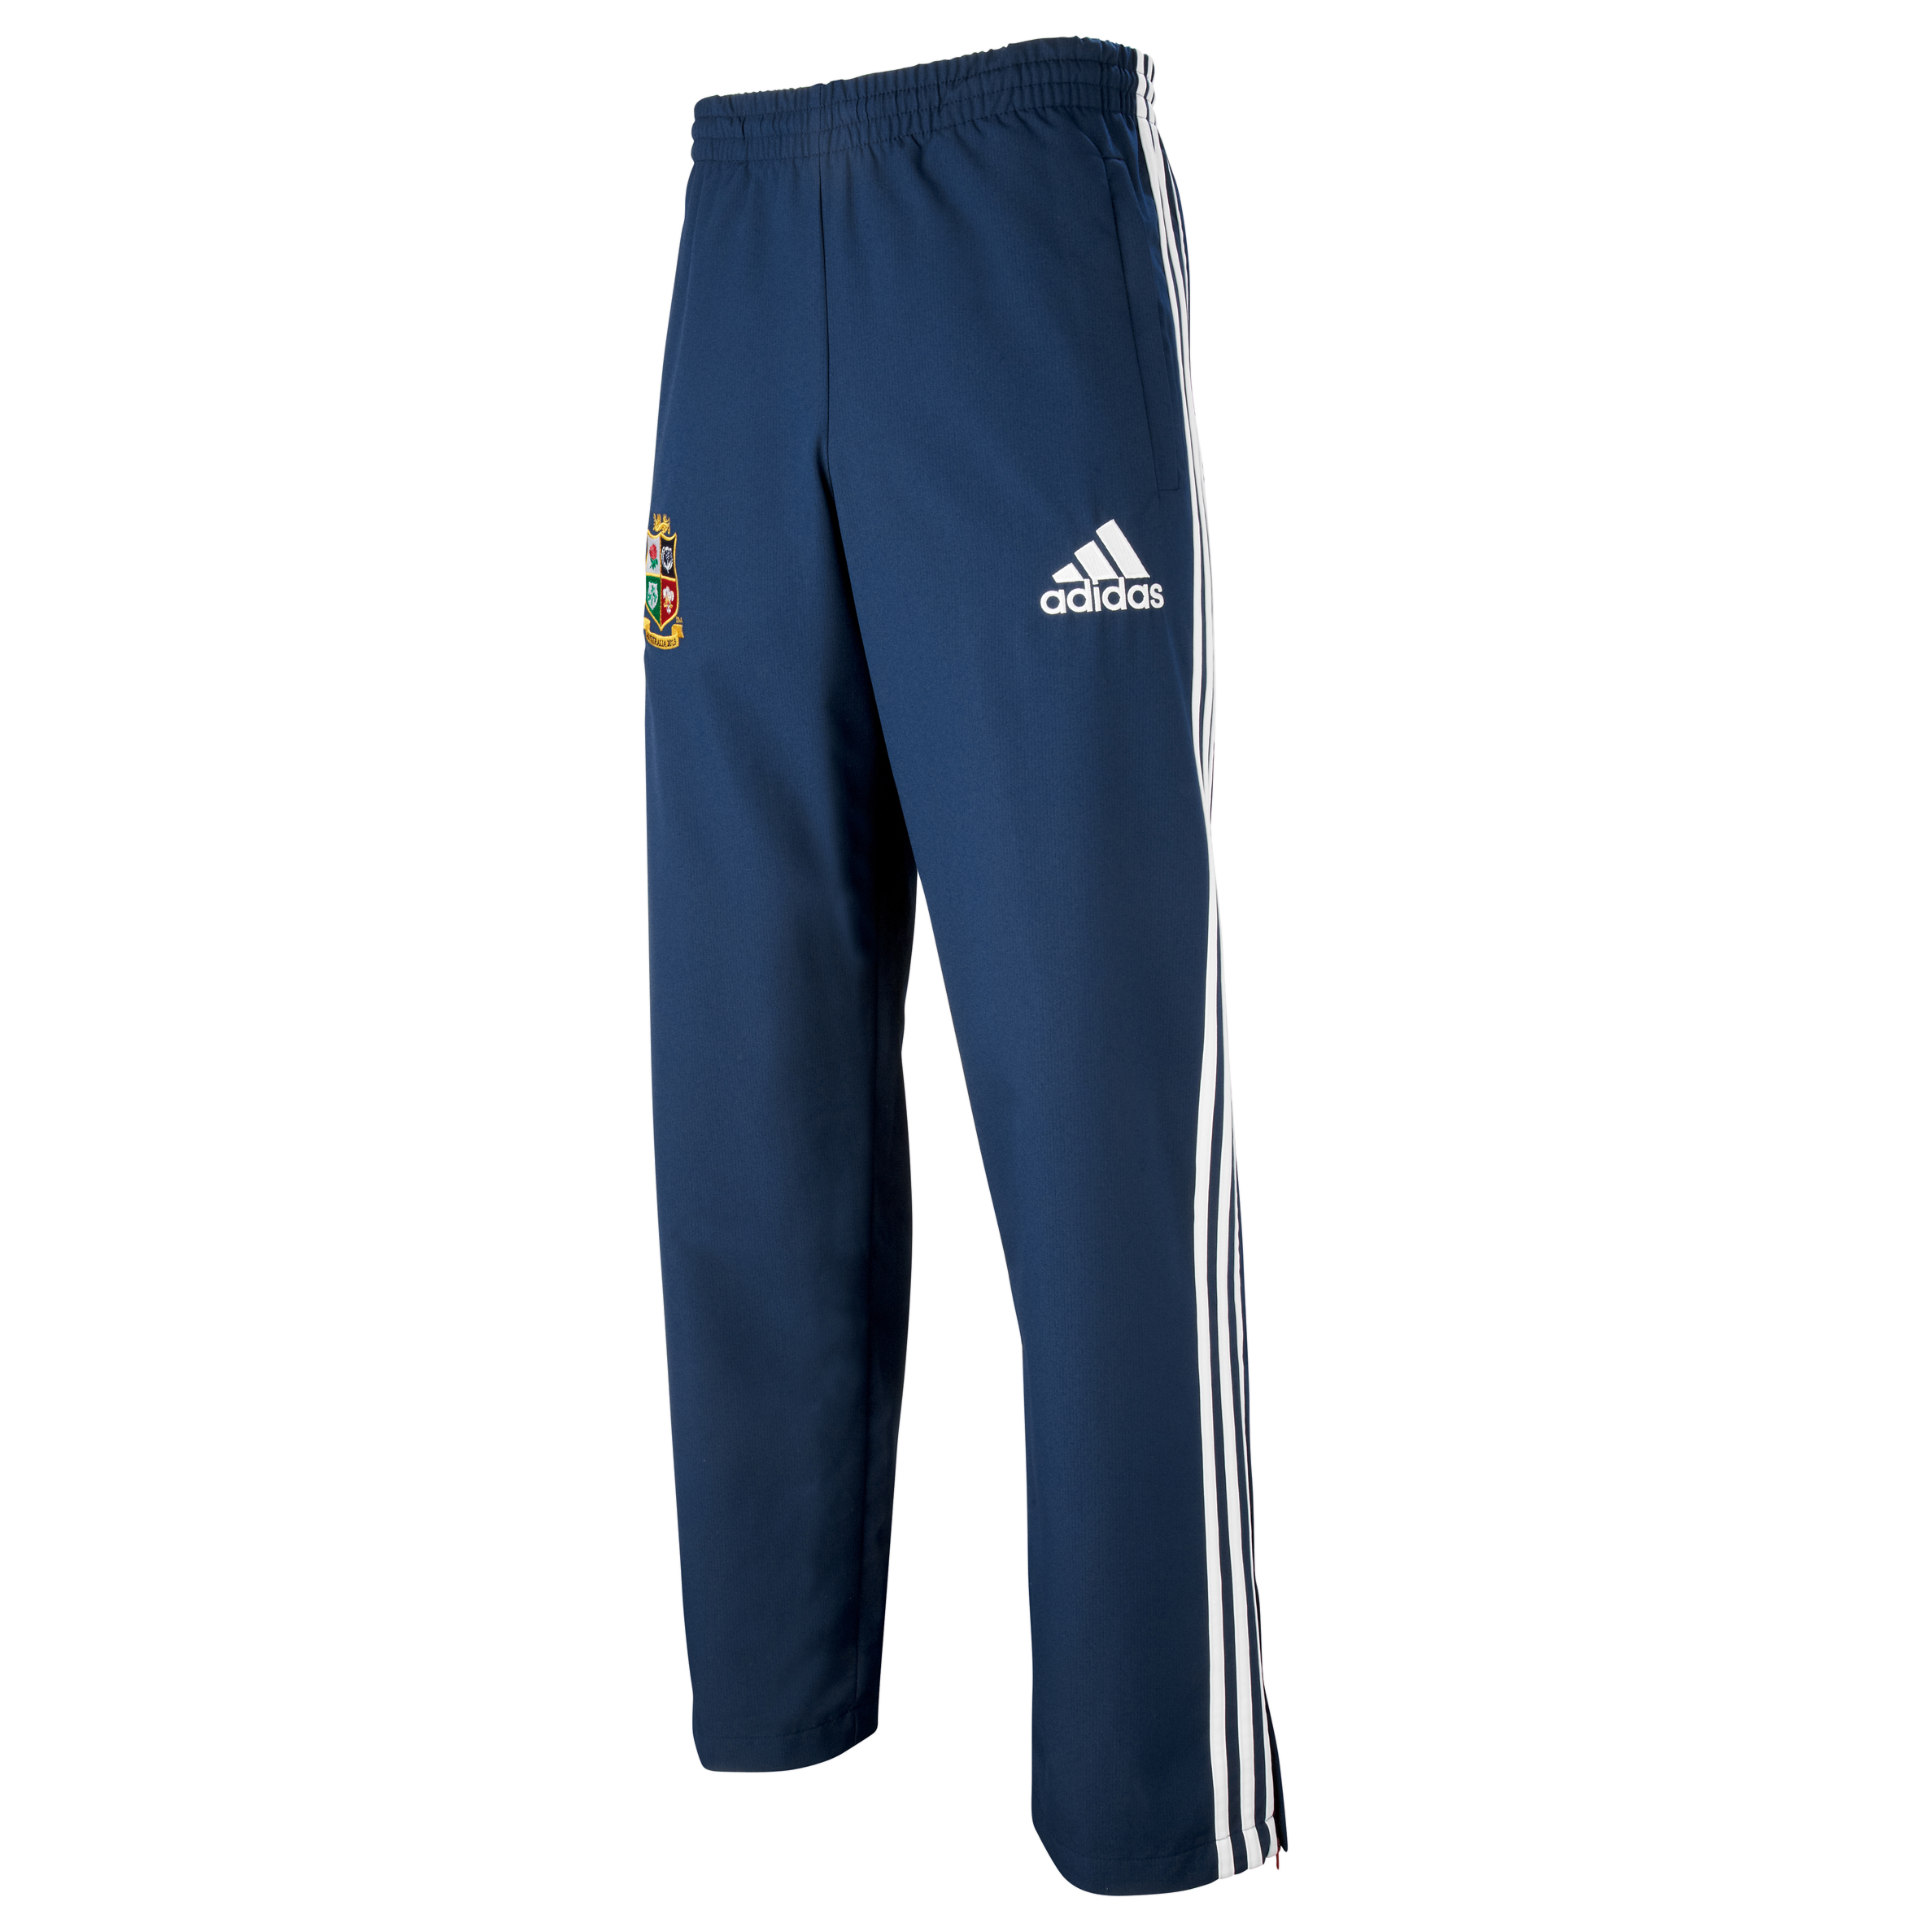 British & Irish Lions Presentation Pants - Collegiate Navy/White